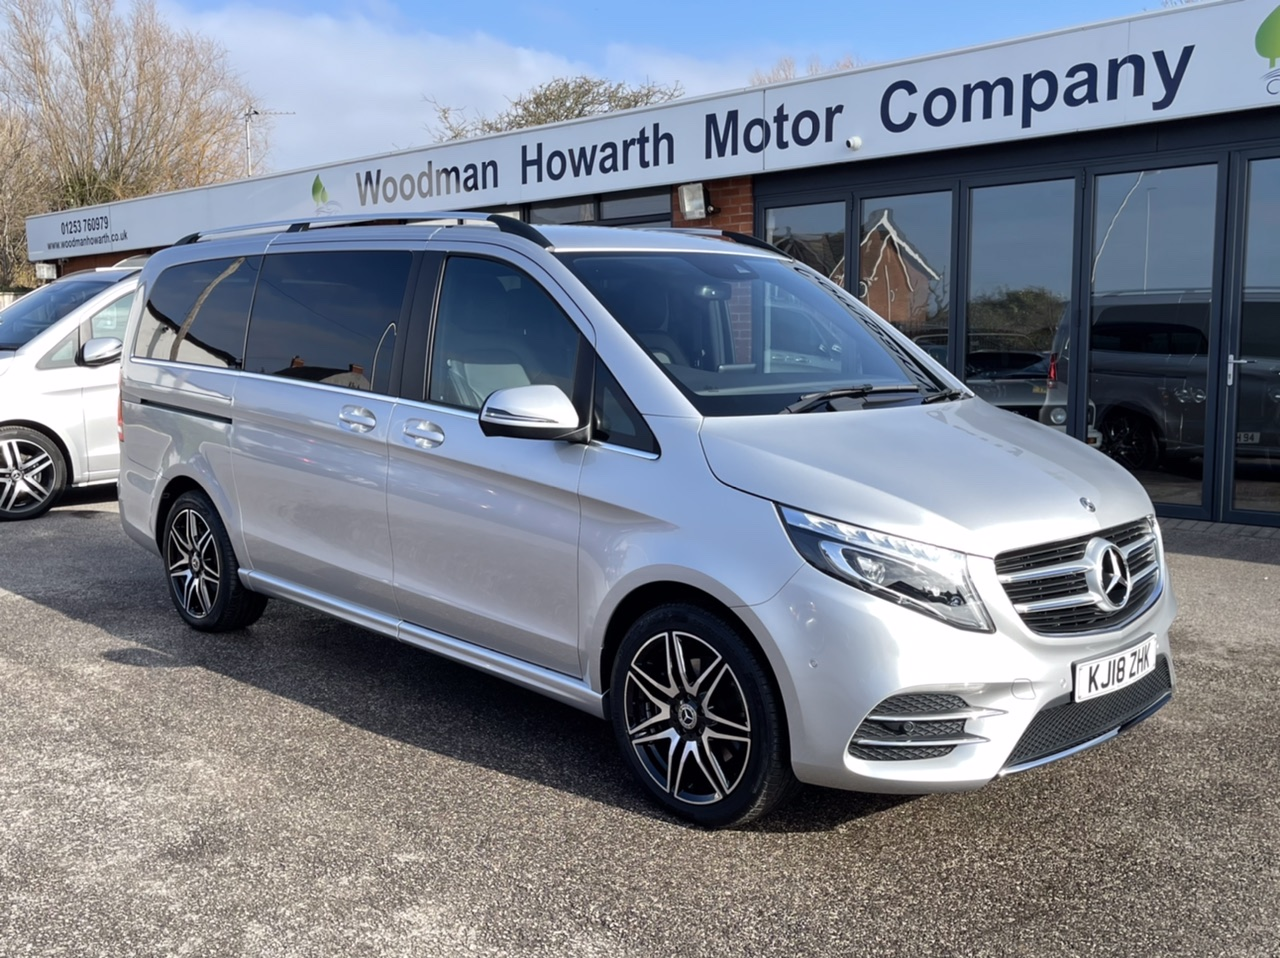 2018 18 MERCEDES BENZ V220 CDI 163BHP AMG LINE AUTO VATQ-8 Seater-Pan Roof-Rare AMG Model-Only 1500 Miles!